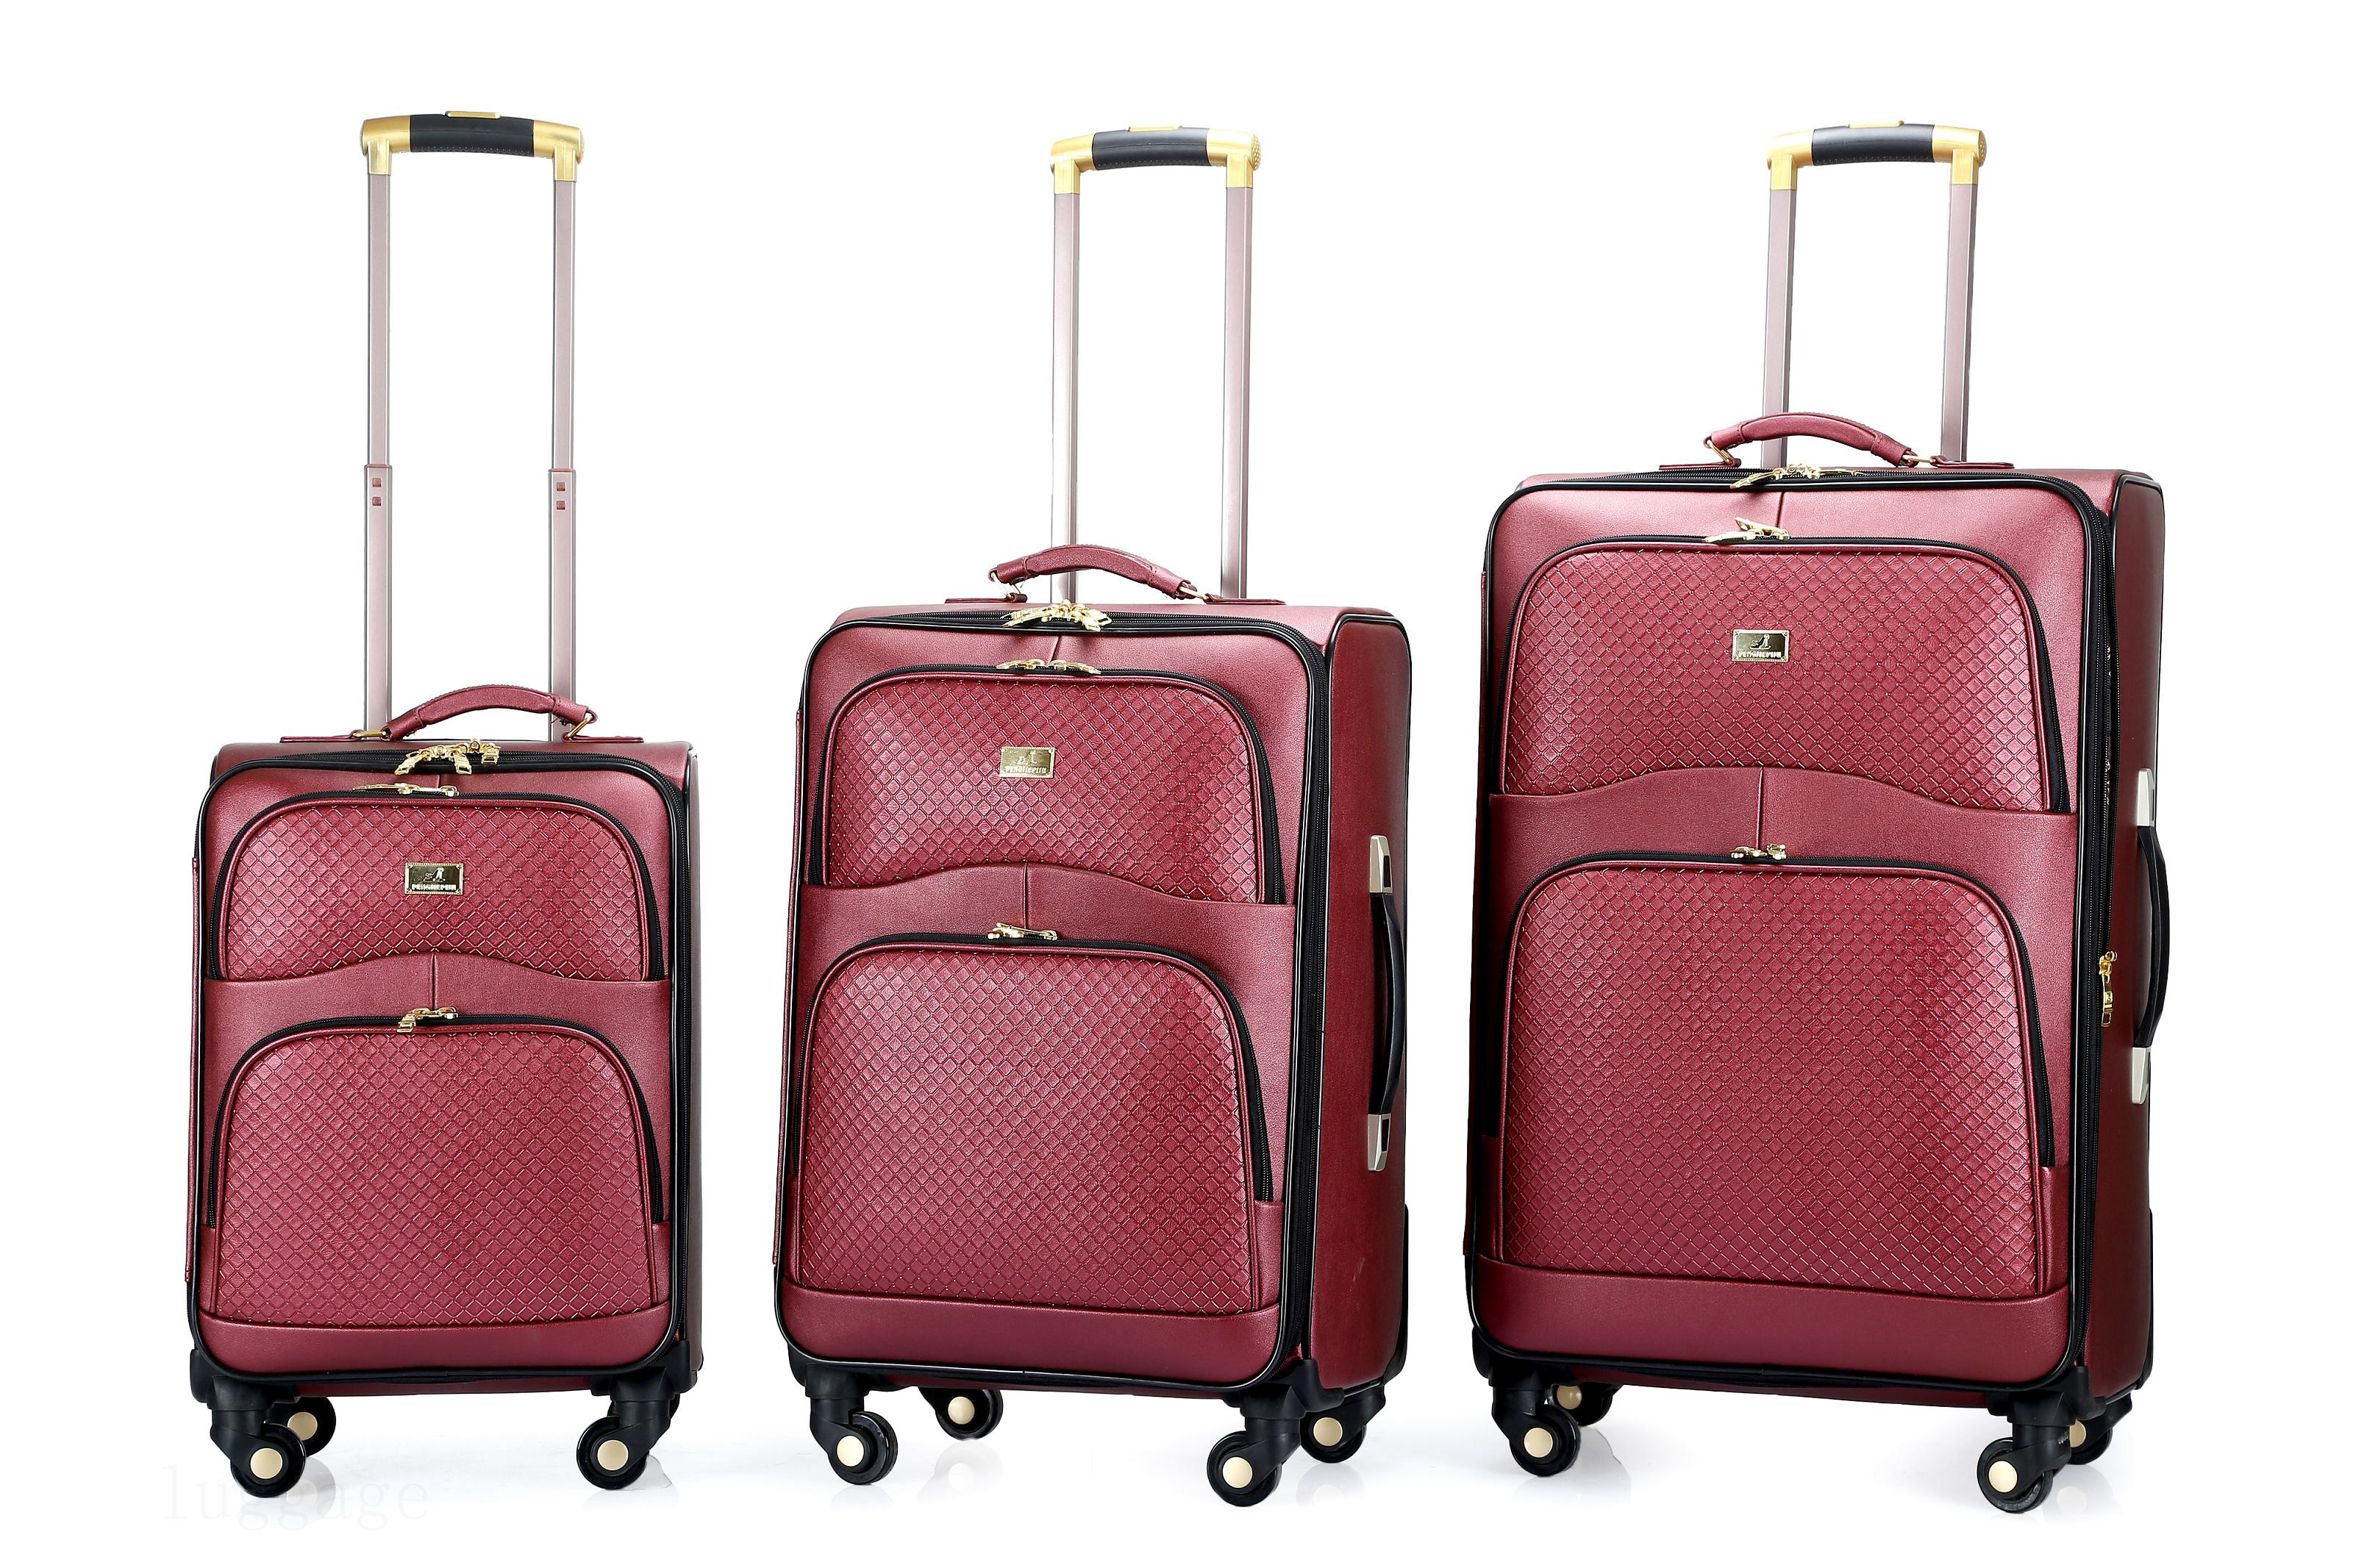 3126#PU luggage